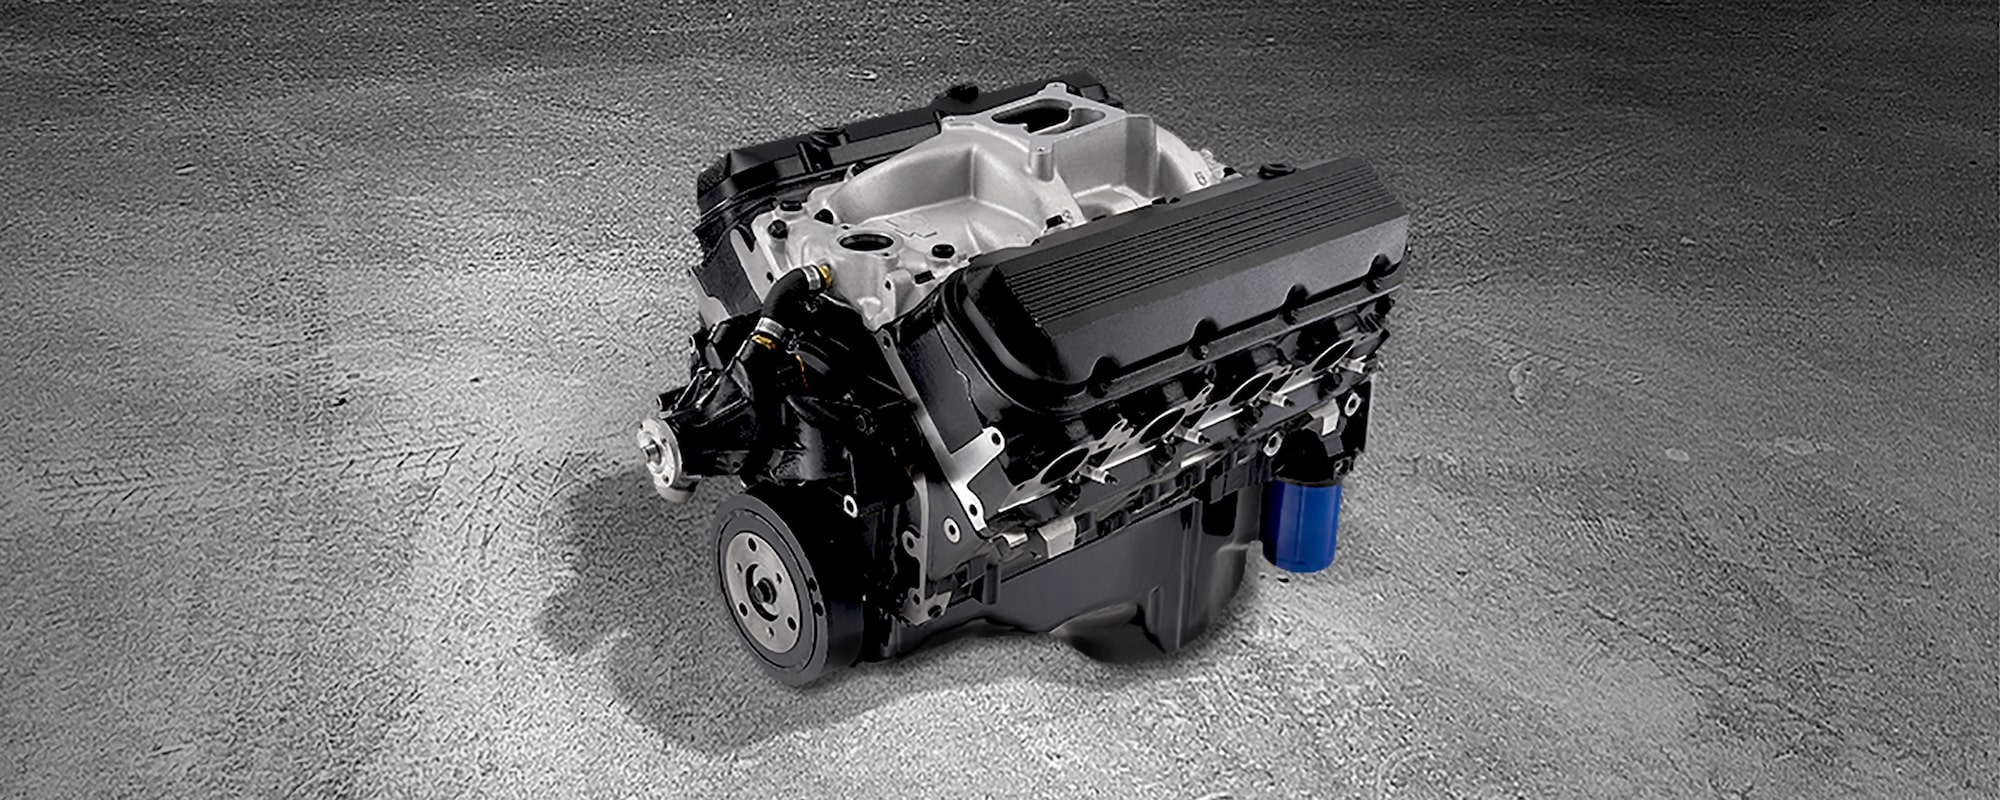 hight resolution of 502 ho big block crate engine chevrolet performance 2 4 twin cam engine and trans bolts